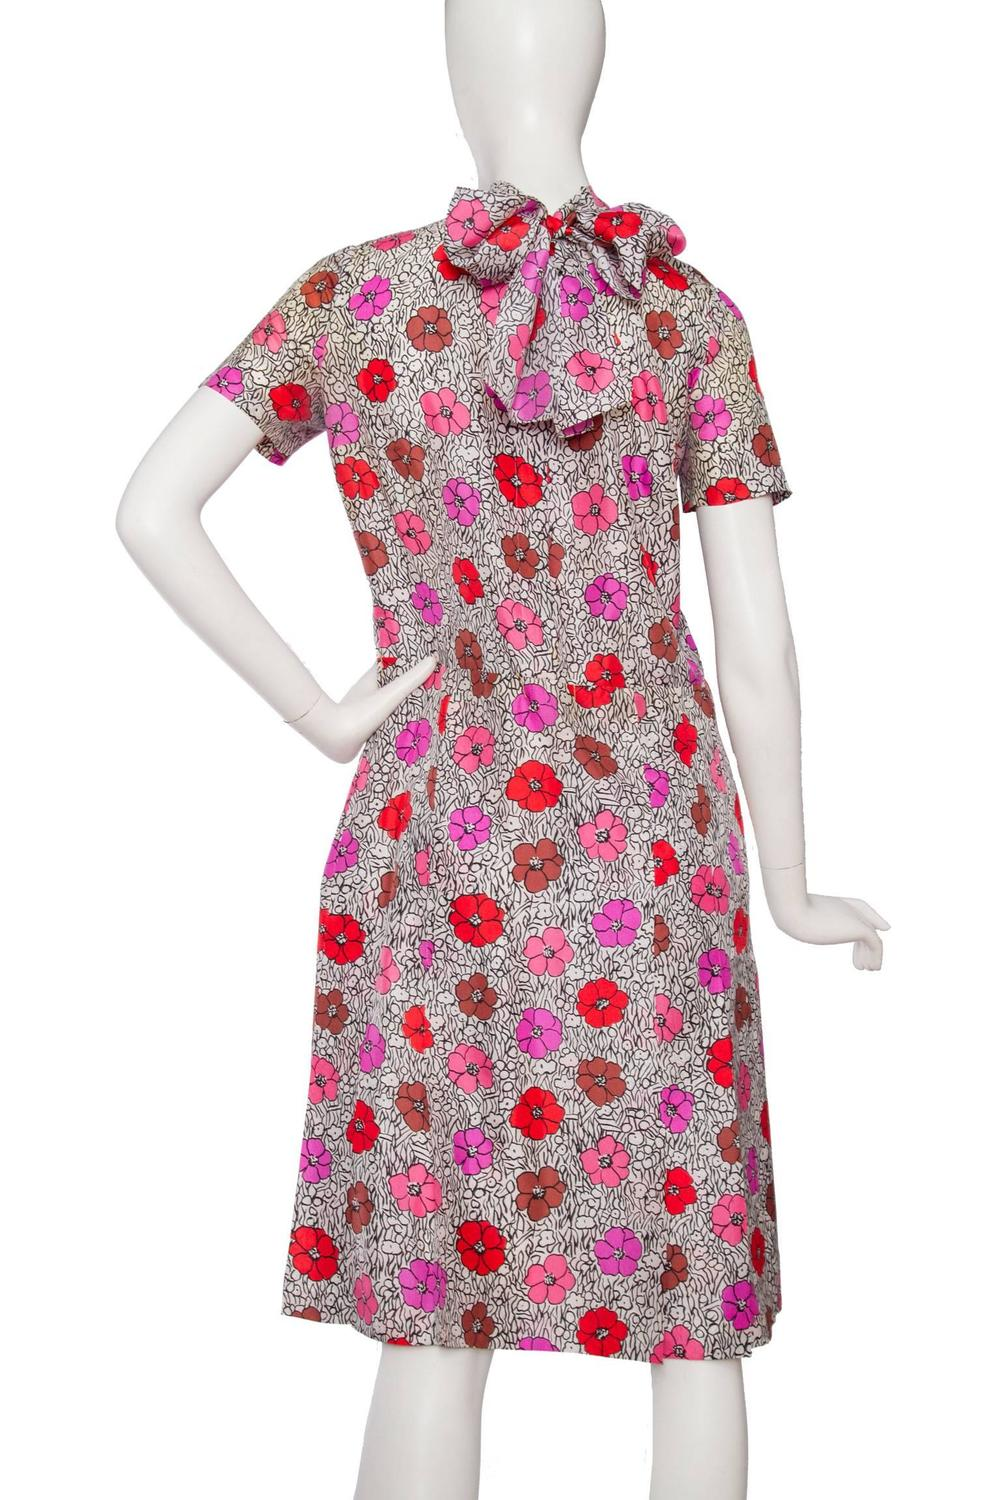 1960s floral chanel haute couture dress for sale at 1stdibs for 1960 s haute couture